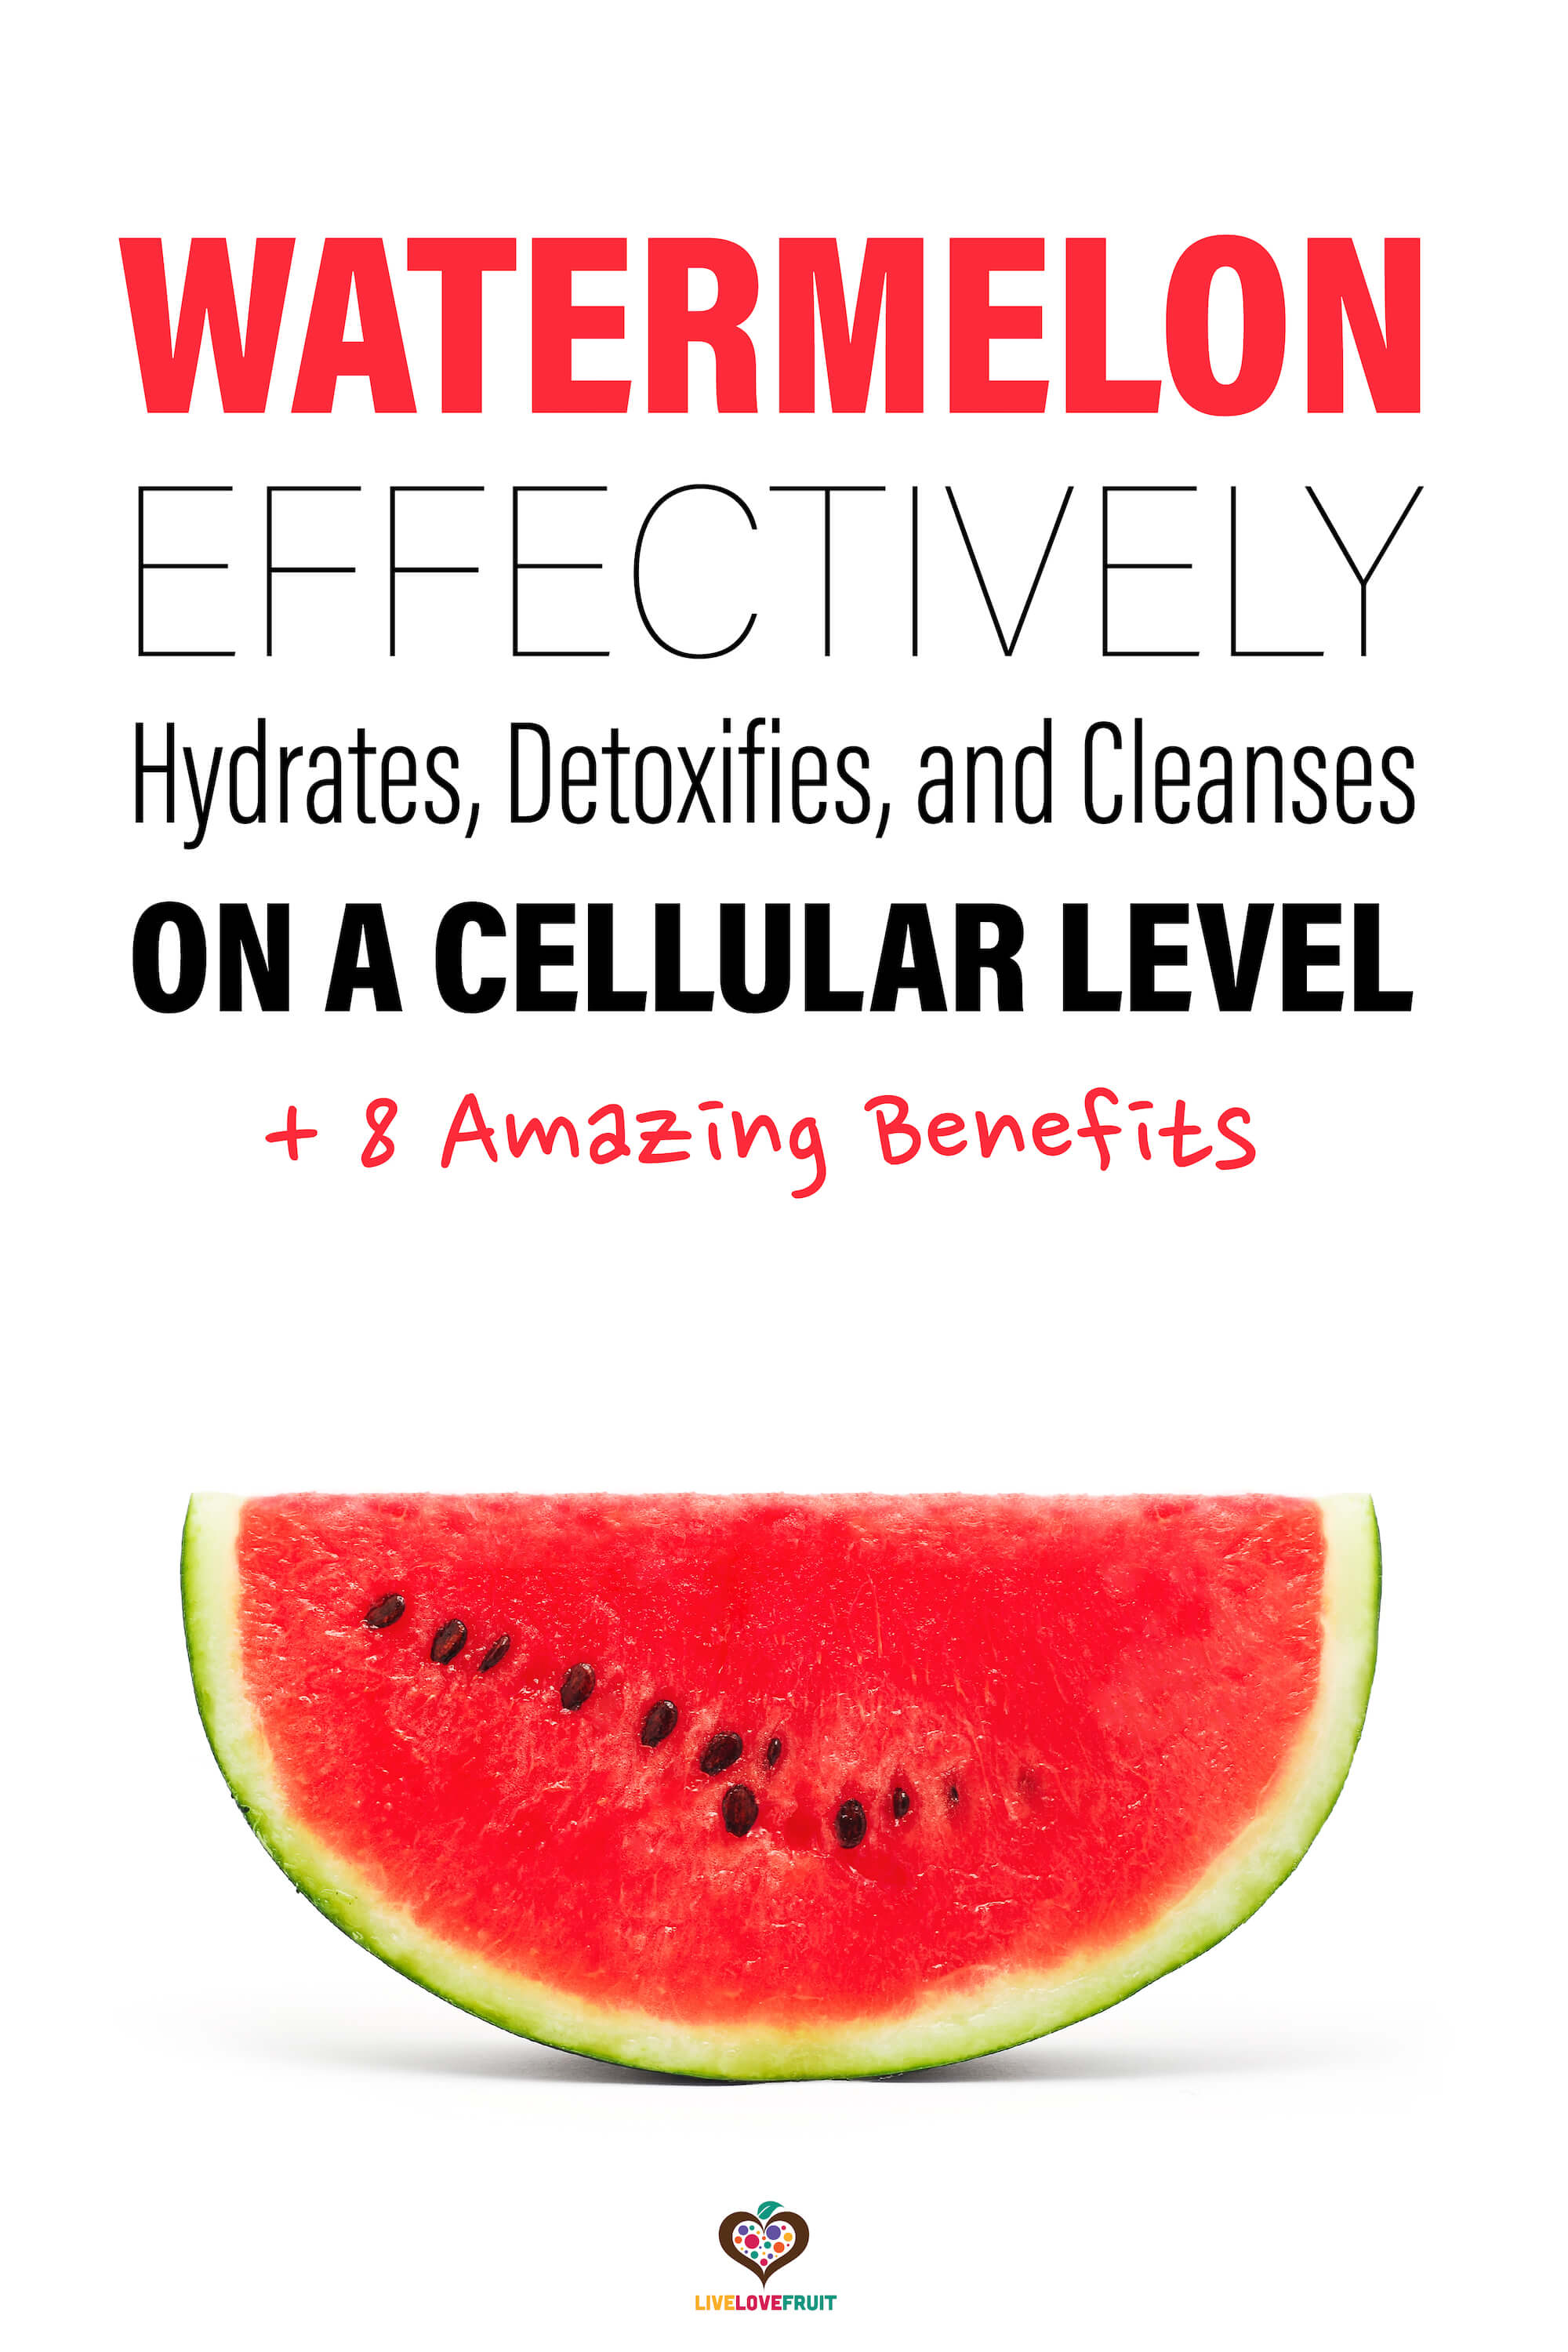 Watermelon on white background with text - watermelon effectively hydrates, detoxifies, and cleanses on a cellular level + 8 amazing benefits